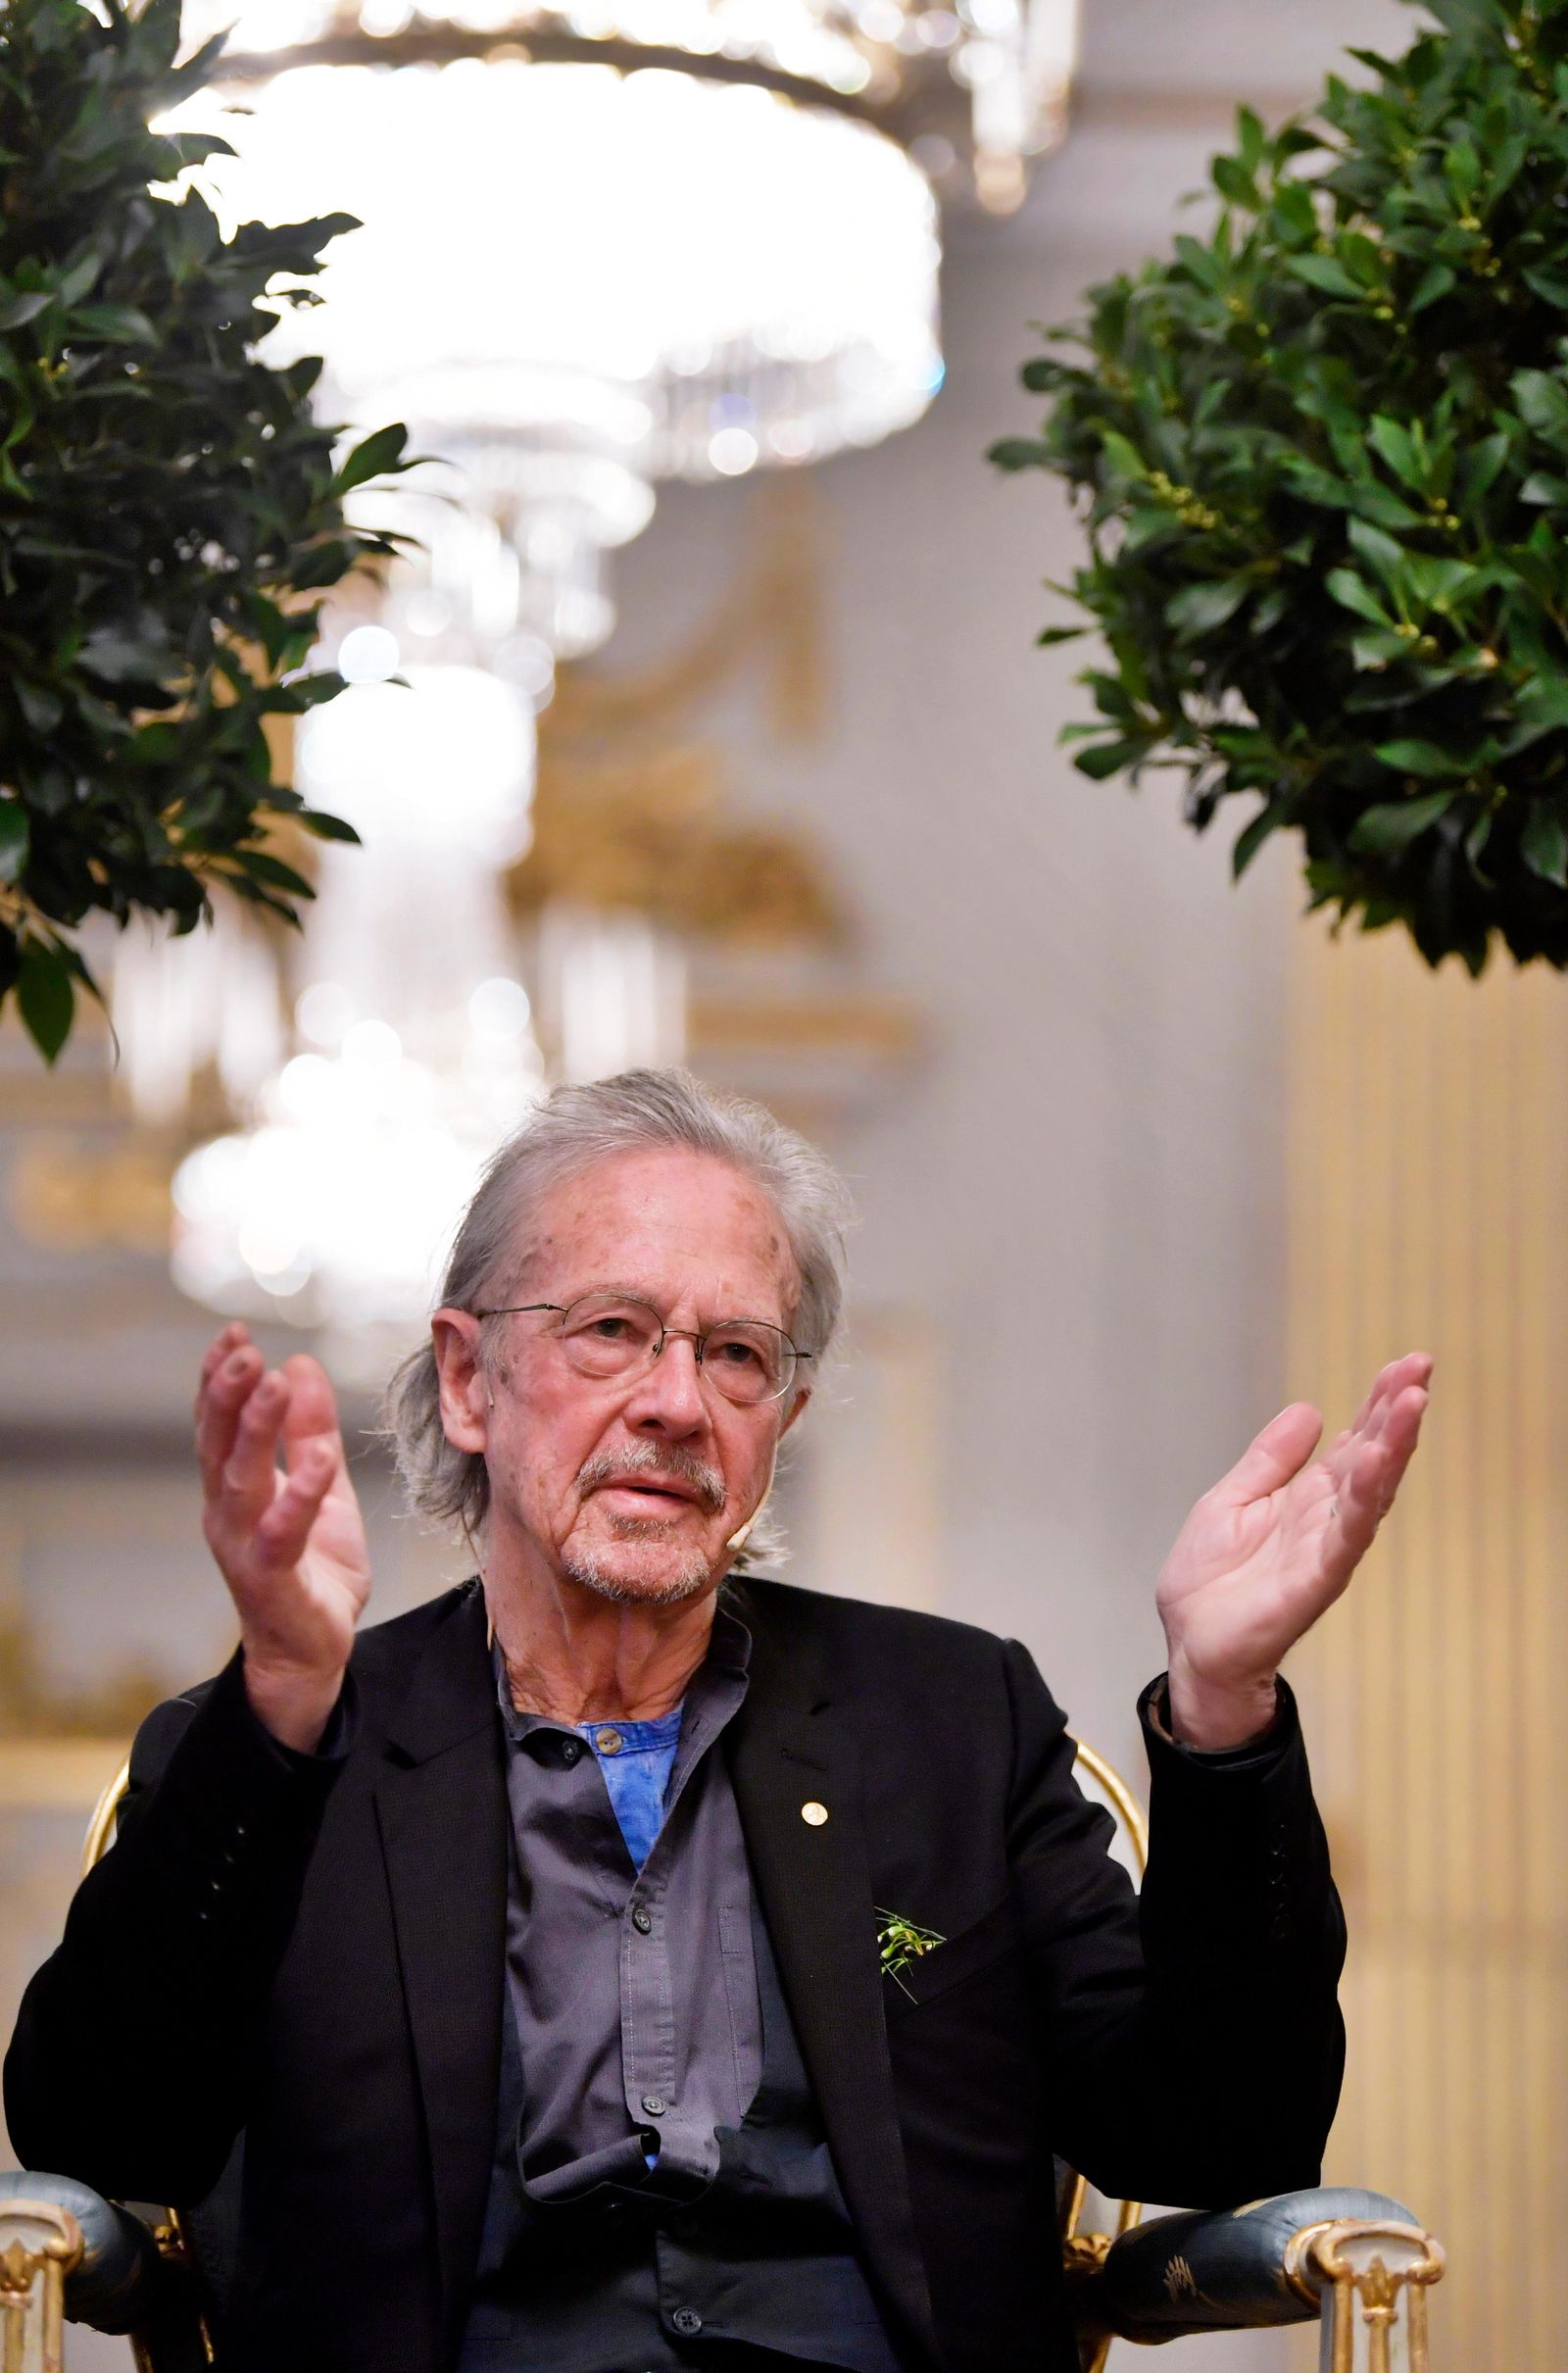 2019 Nobel Prize laureate in literature Peter Handke speaks at a press conference at the Swedish Academy in Stockholm, Sweden, Monday Dec. 6, 2019. (Anders Wiklund/TT via AP)